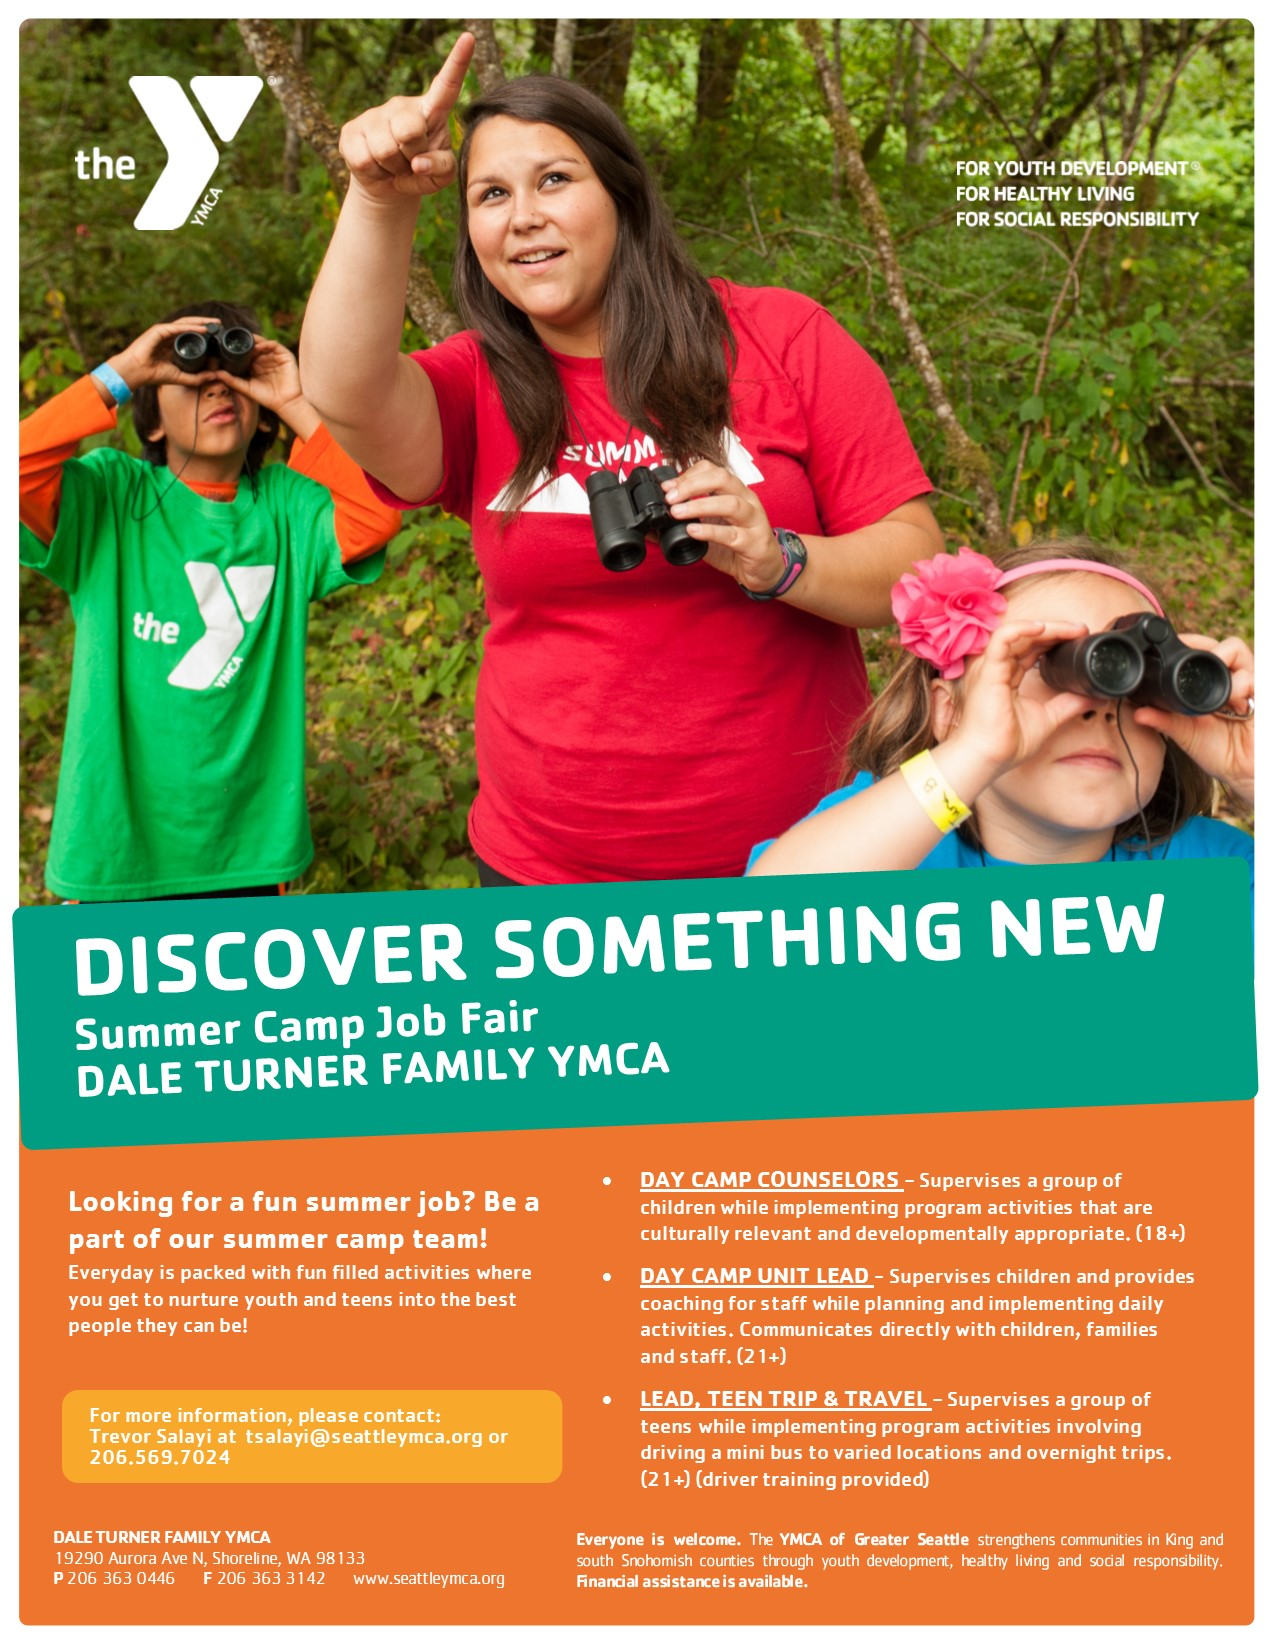 Dale Turner Family YMCA hiring for the summer - My Edmonds News